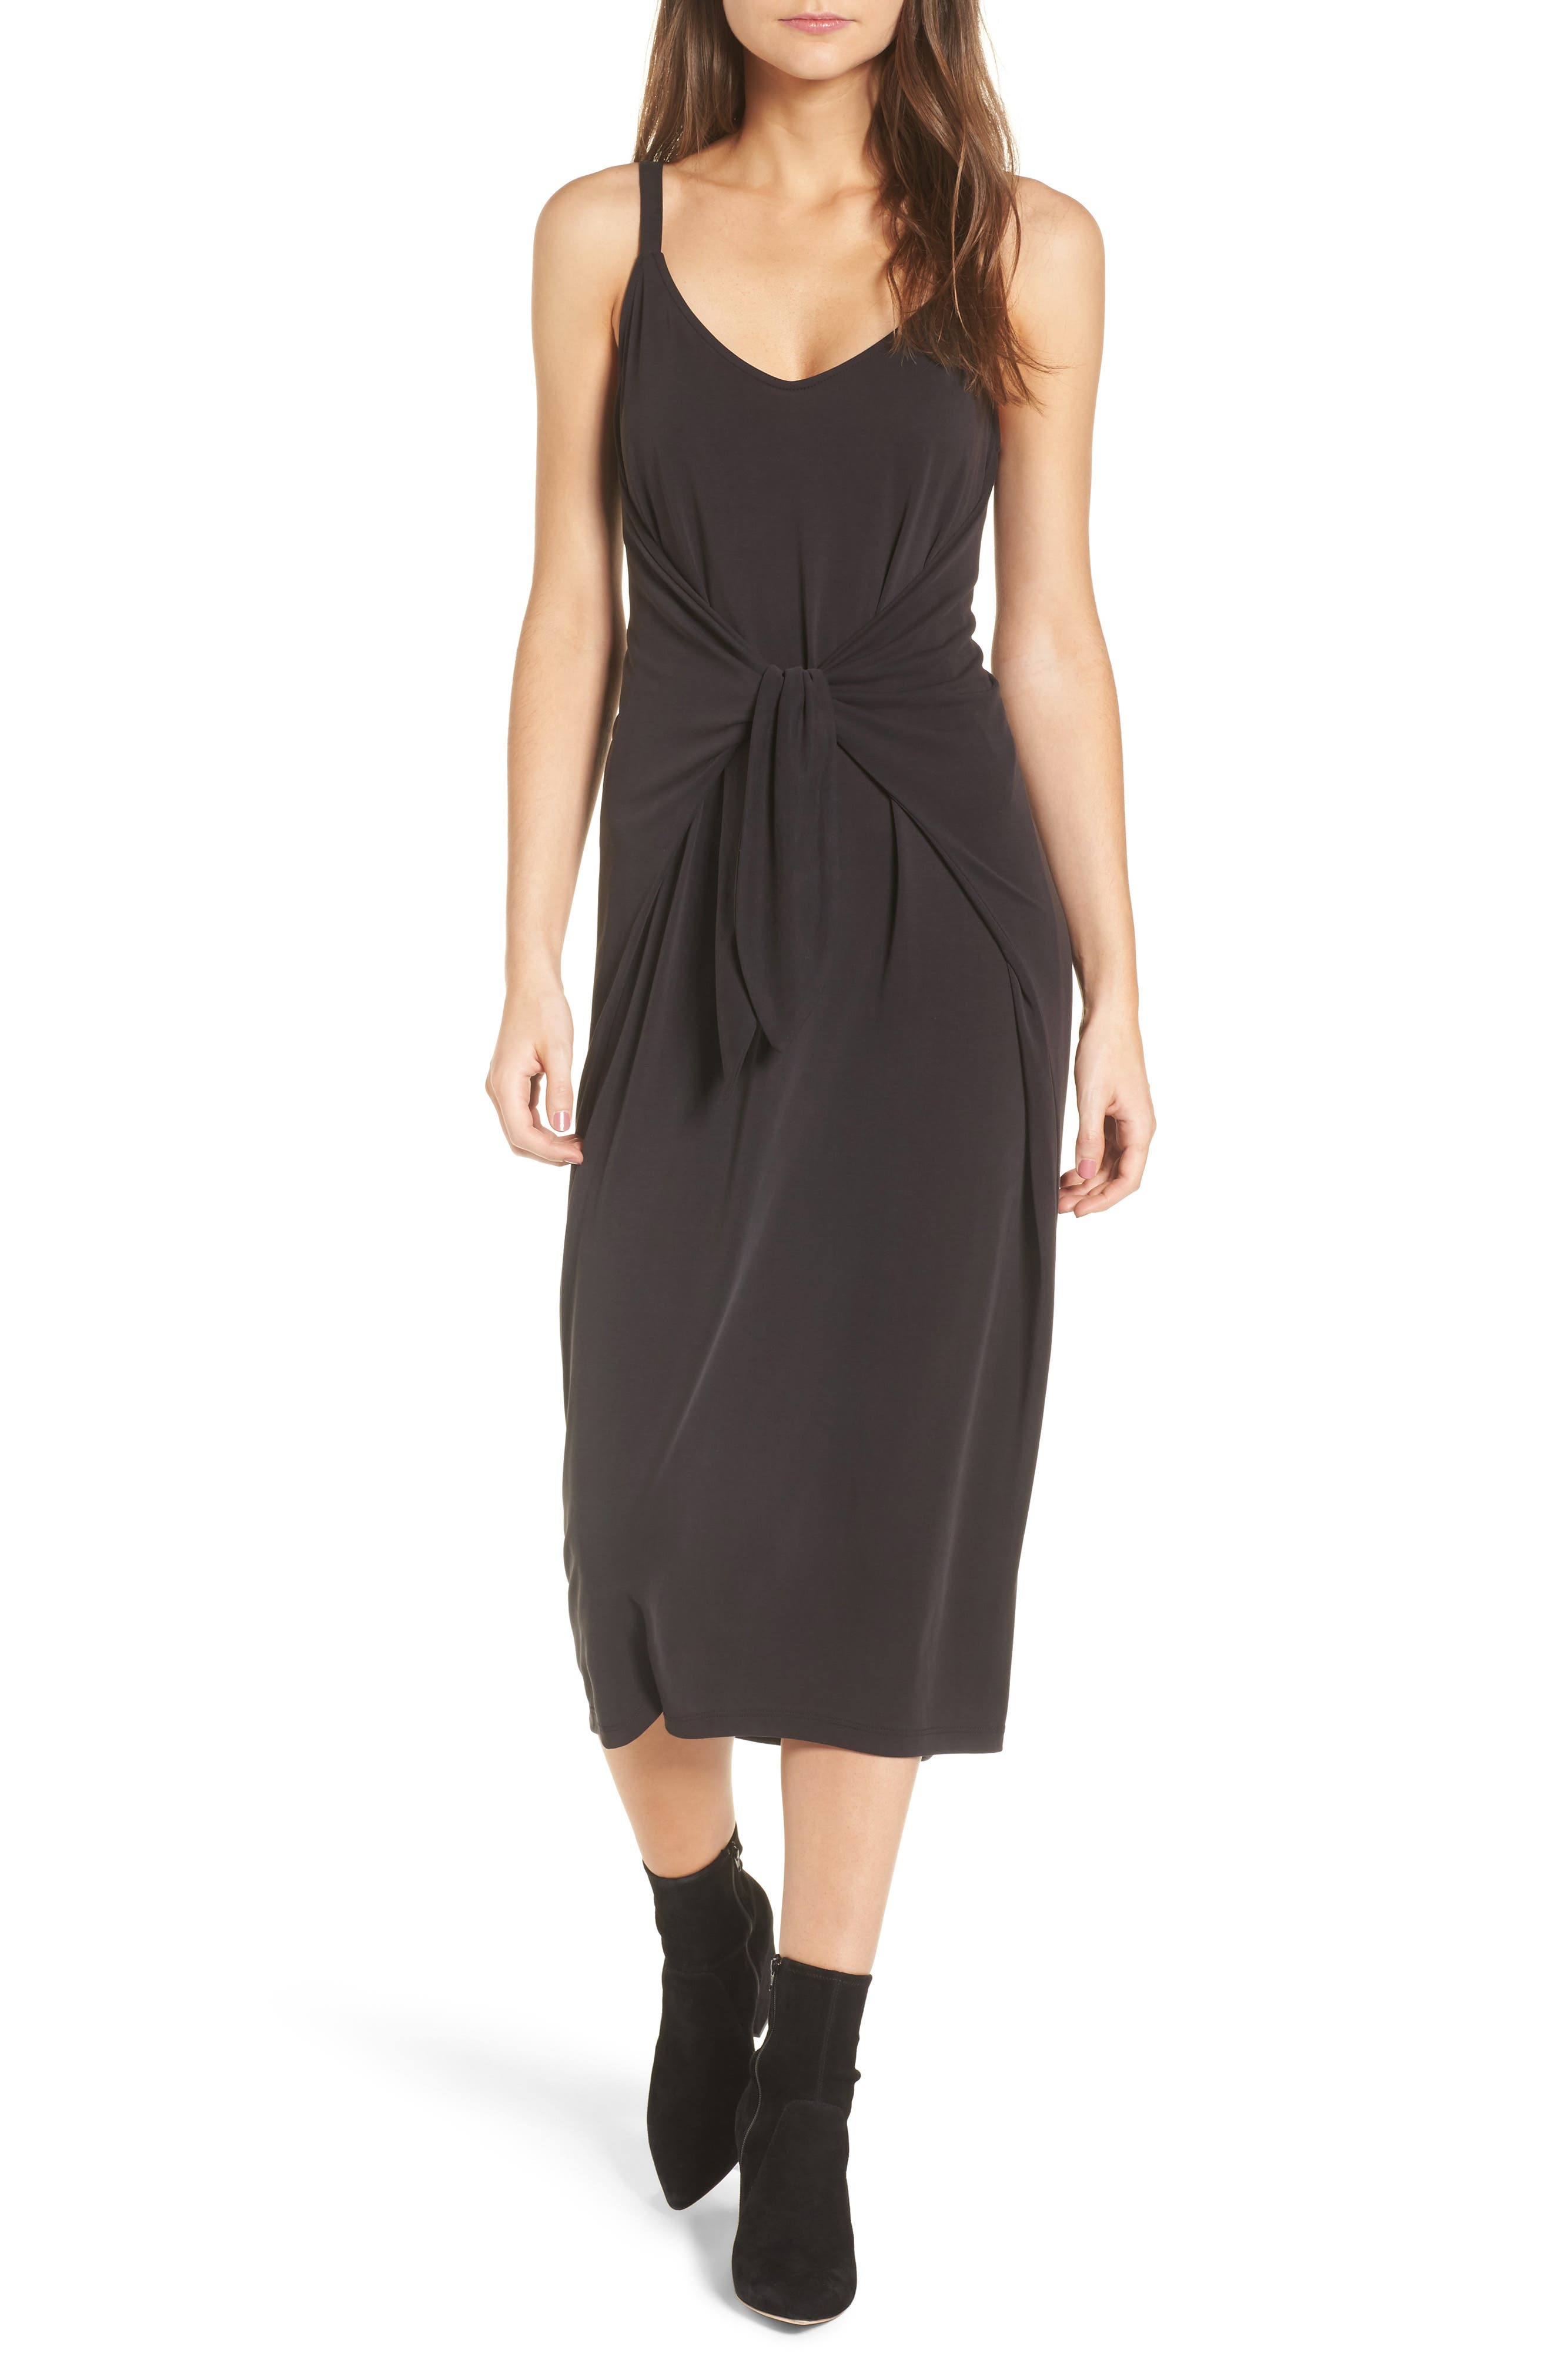 Knotted Midi Dress,                             Main thumbnail 1, color,                             Black